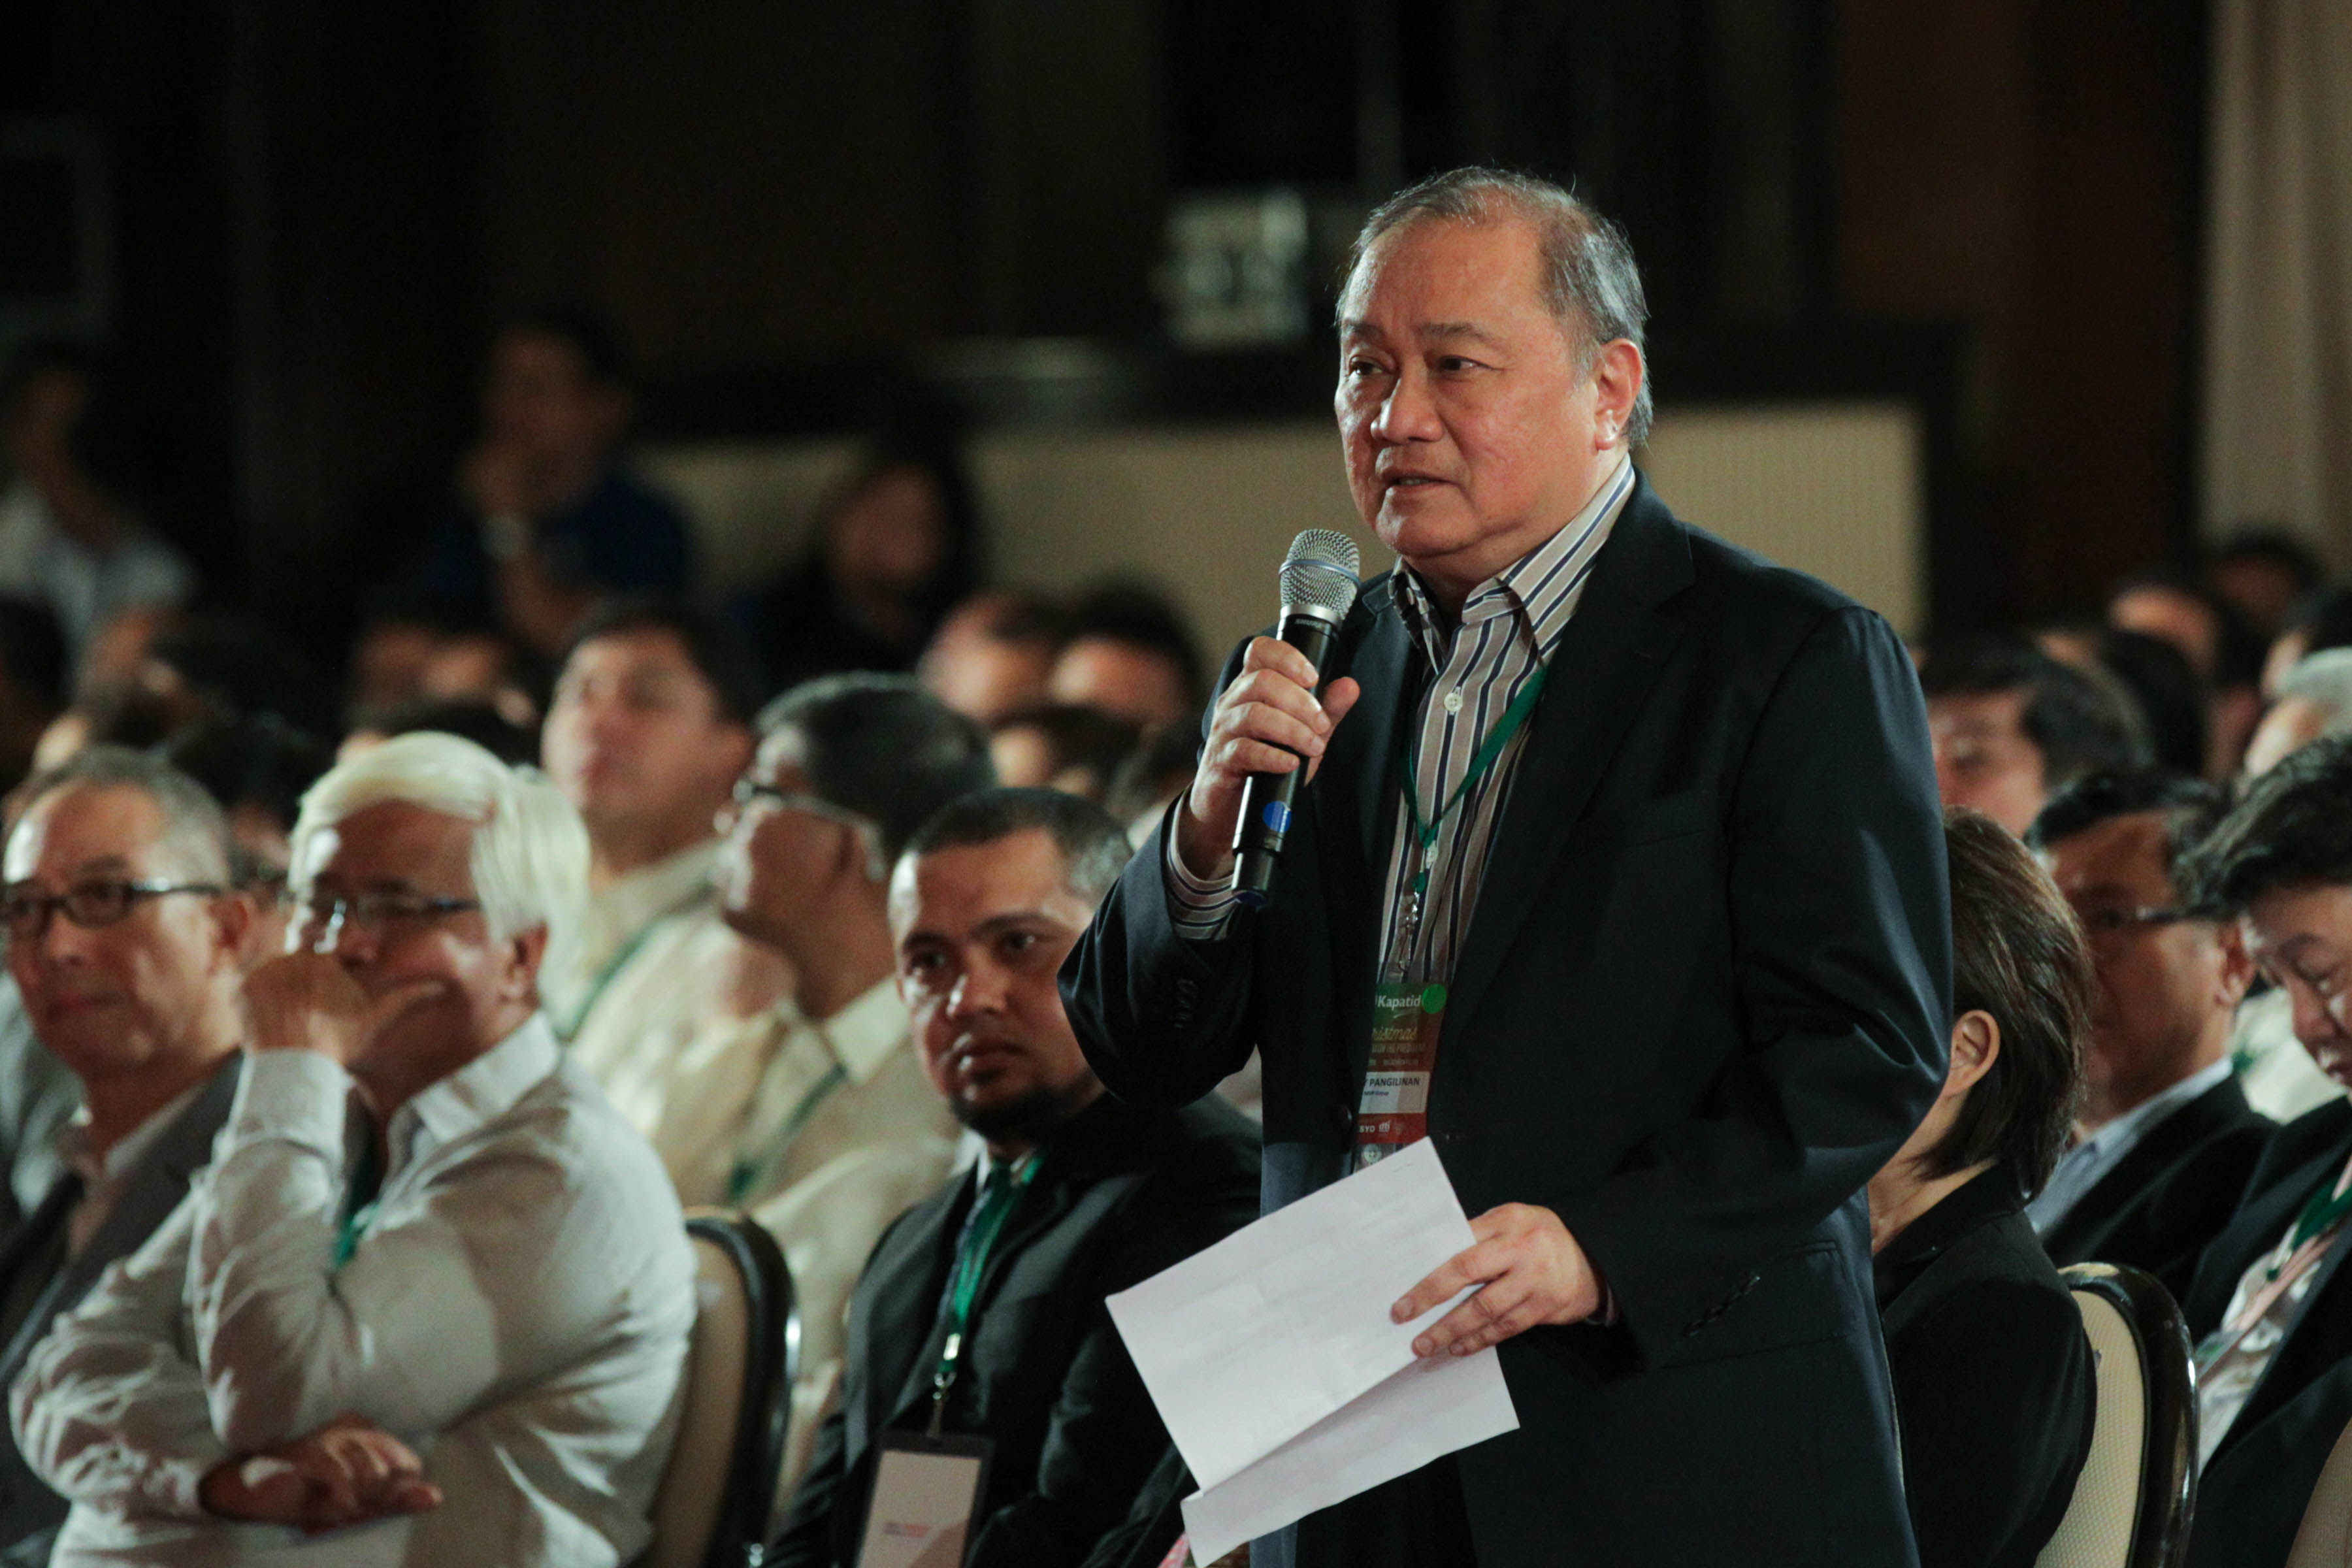 PLEDGE FOR SULU. Businessman Manny V Pangilinan speaks at the Go Negosyo event for Sulu development in Malacau00f1ang. Photo from PPD